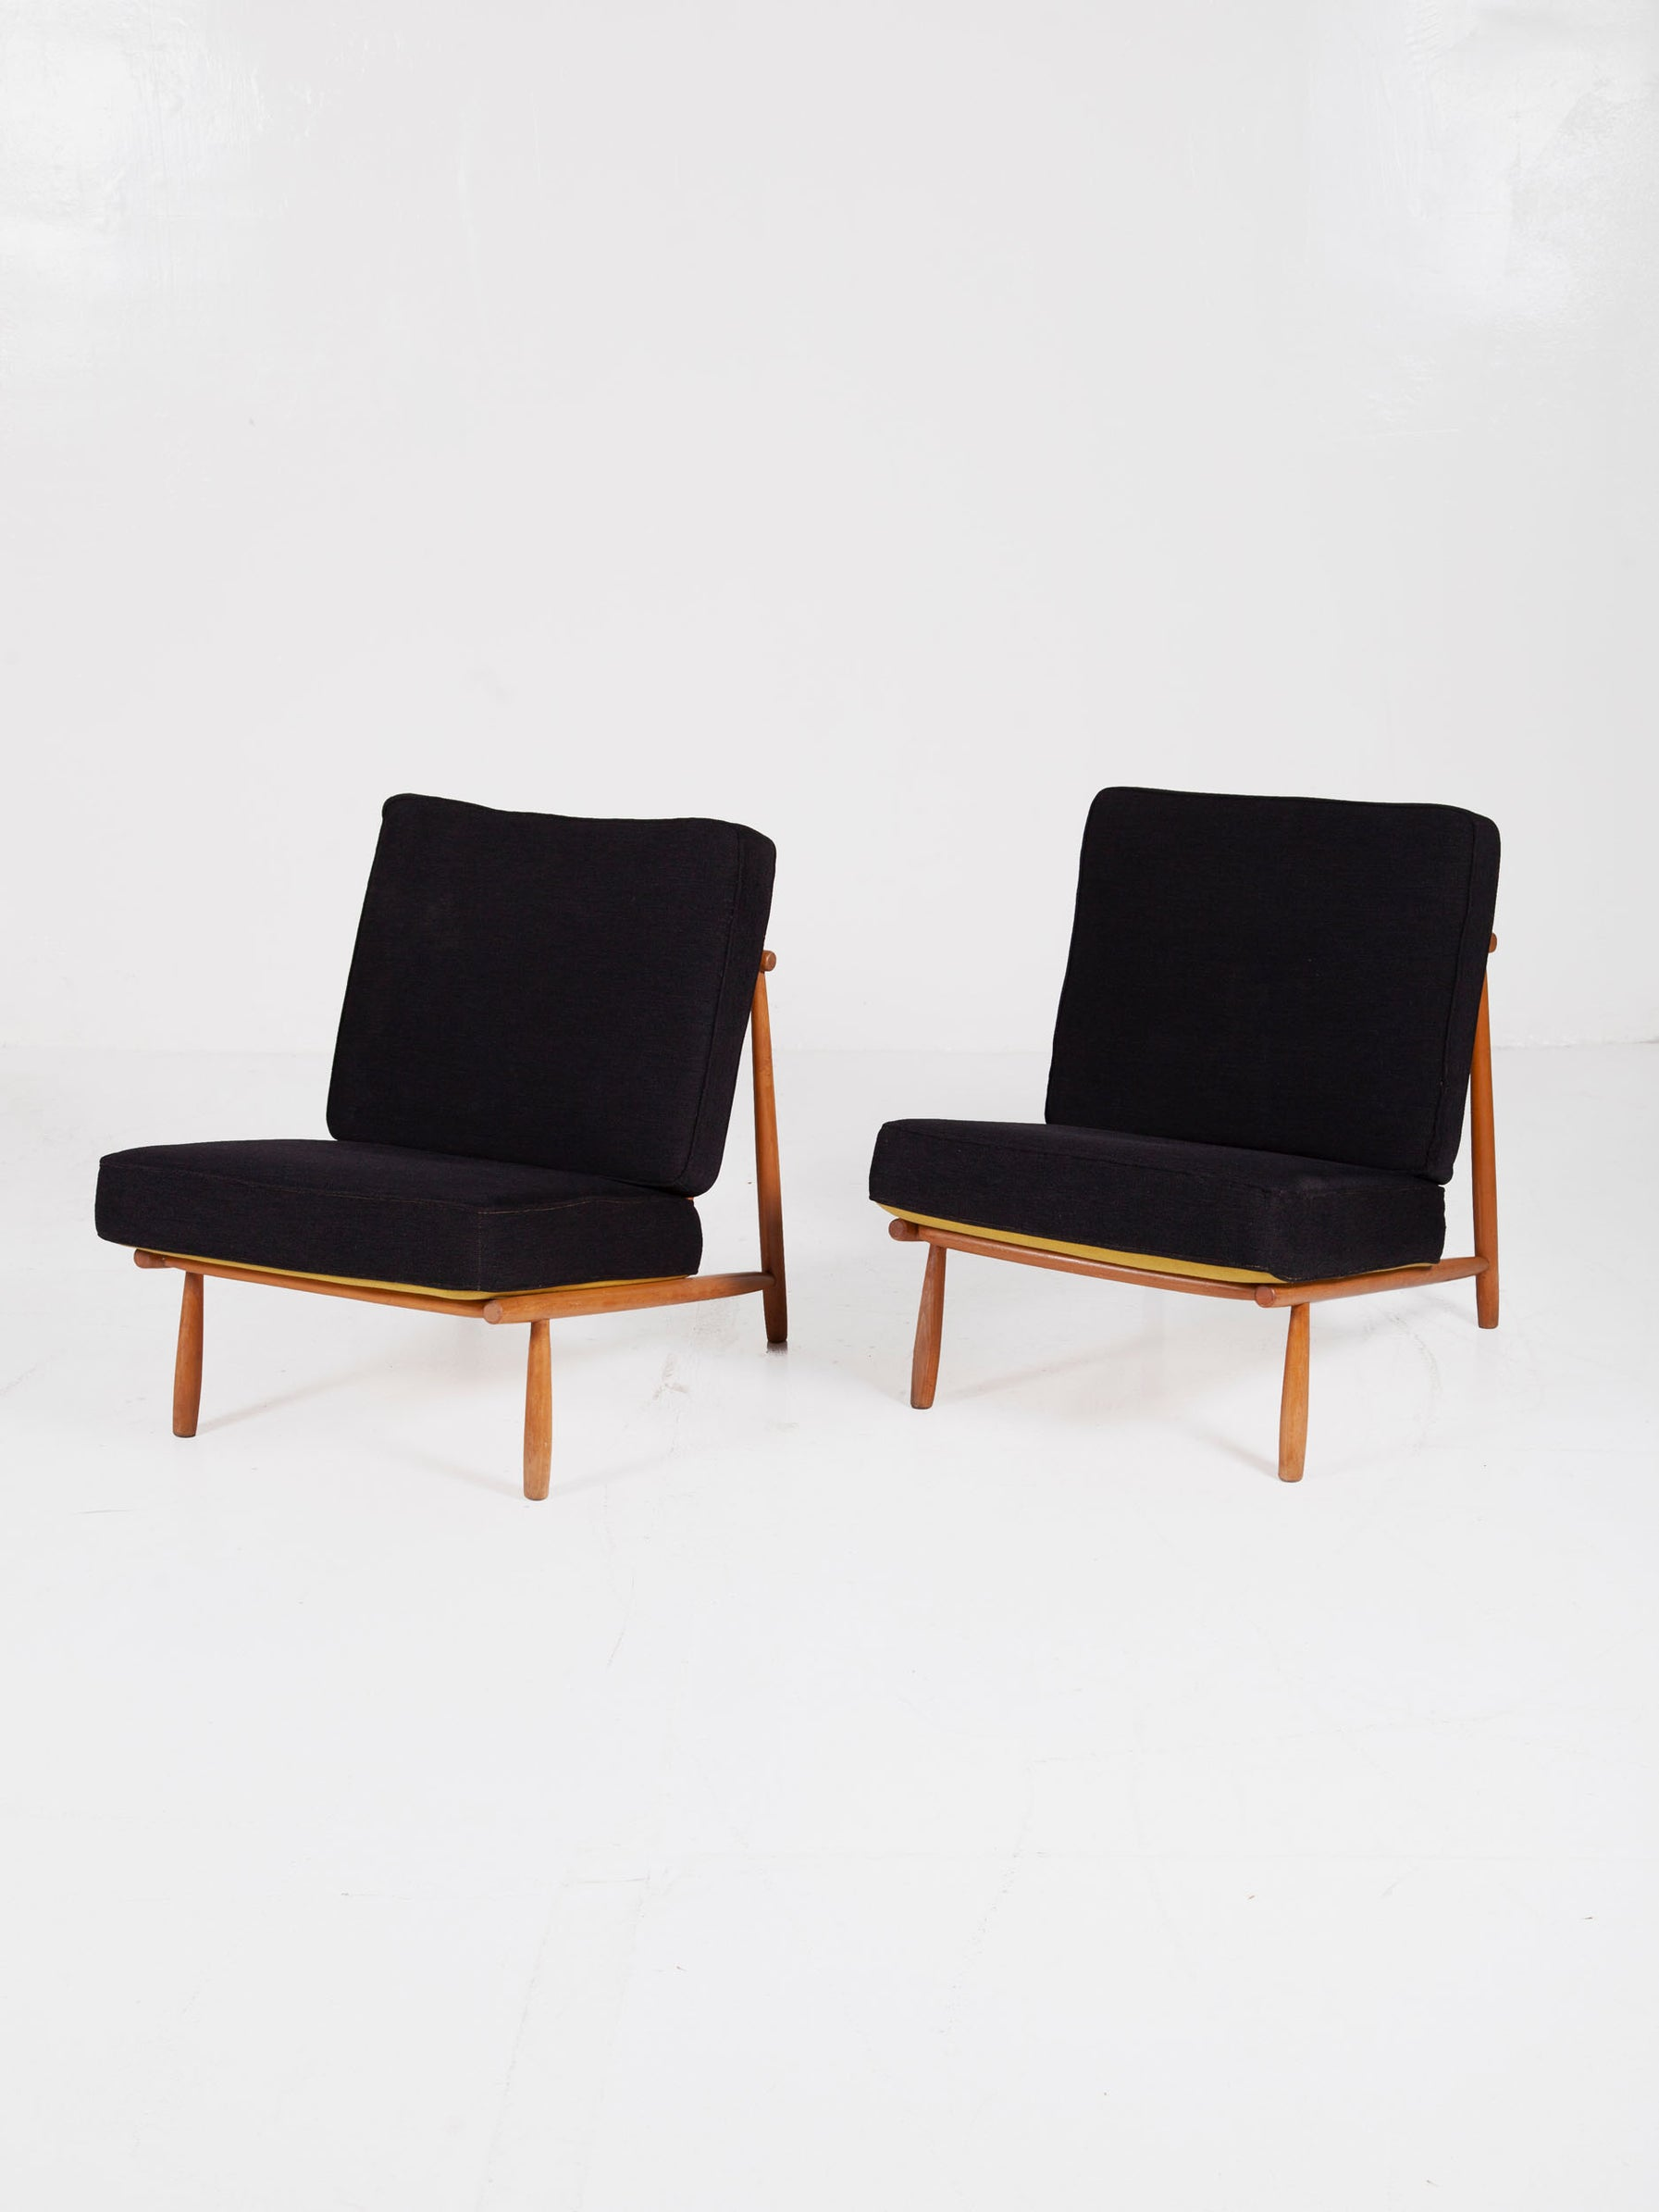 Set of Two Lounge Chairs by Alf Svensson for Dux